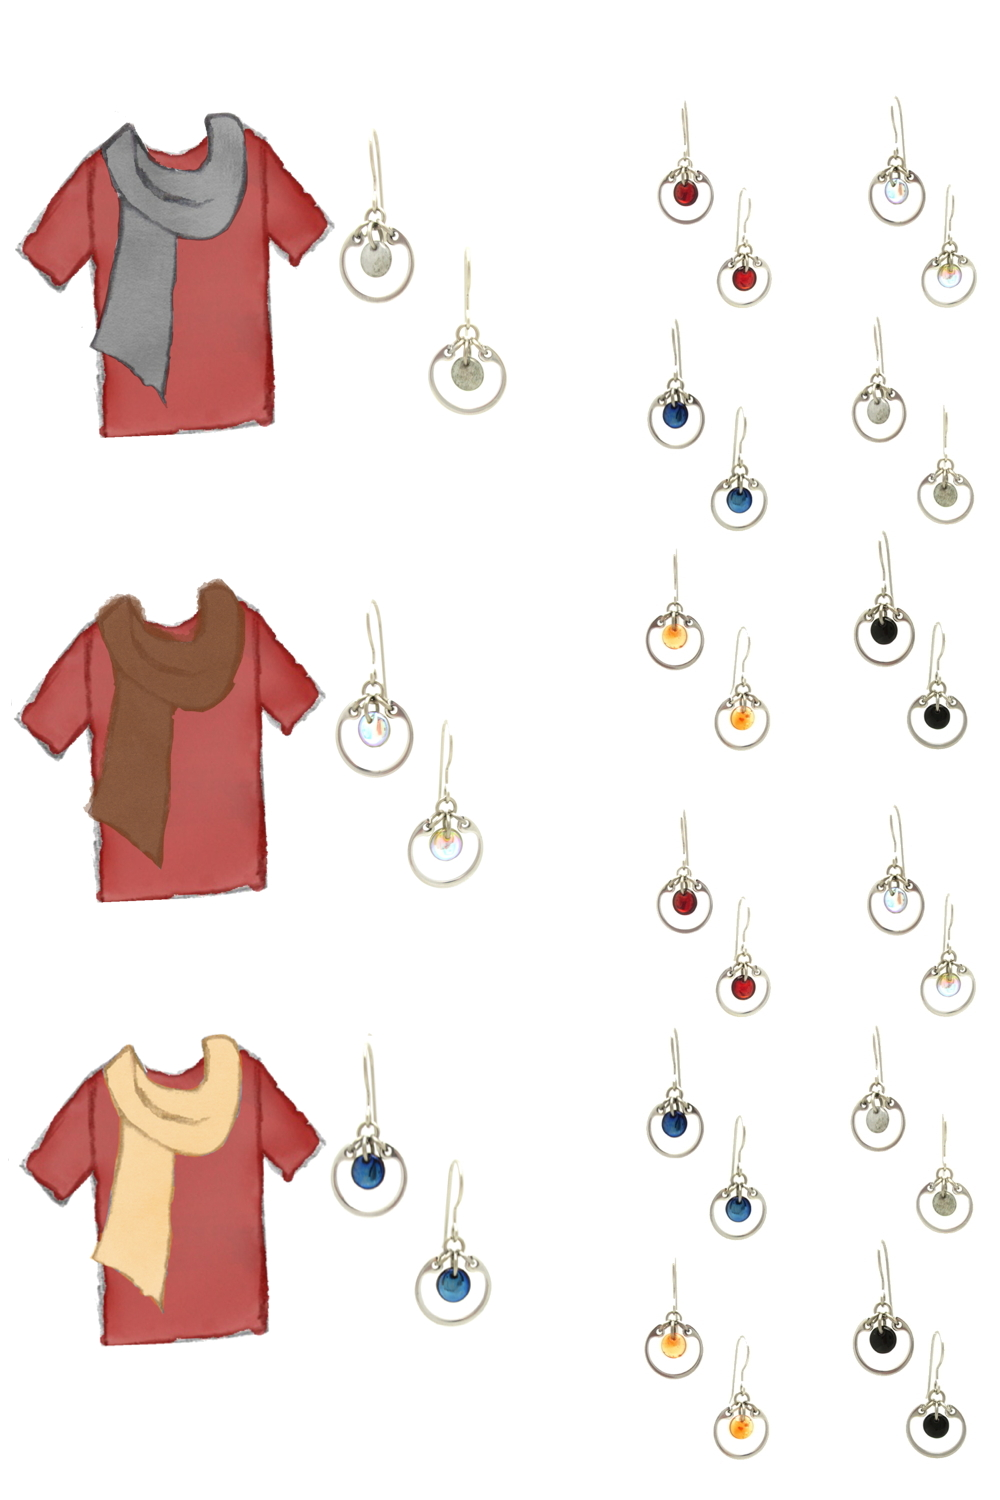 3 sketches of a red tee plus scarf: gray, brown, and pale orange, plus small moder circle earrings by wraptillion in gray, pale rainbow, navy blue, orange, black, and red